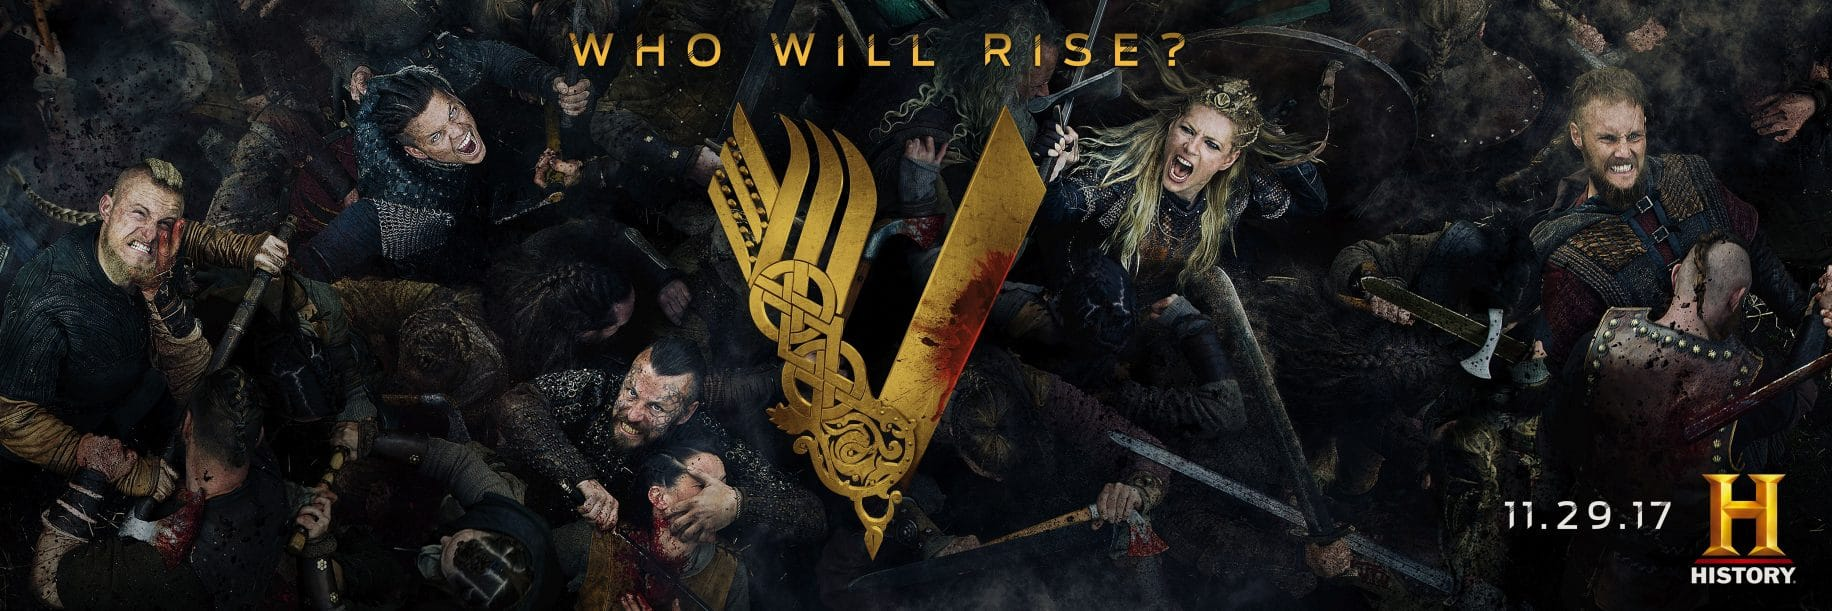 Vikings on History reveals Season 5 key art and extended